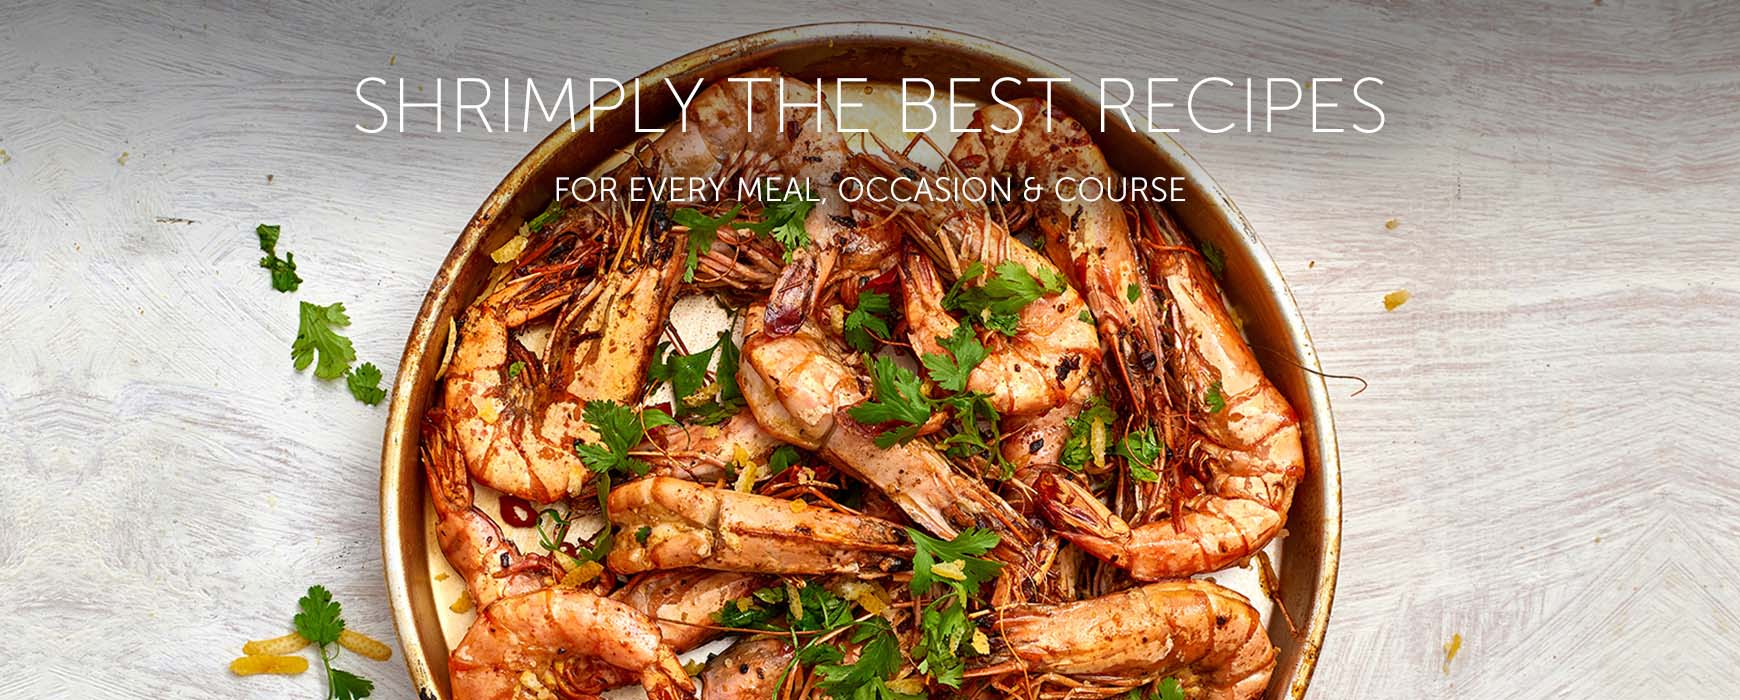 Shrimply The Best Recipes